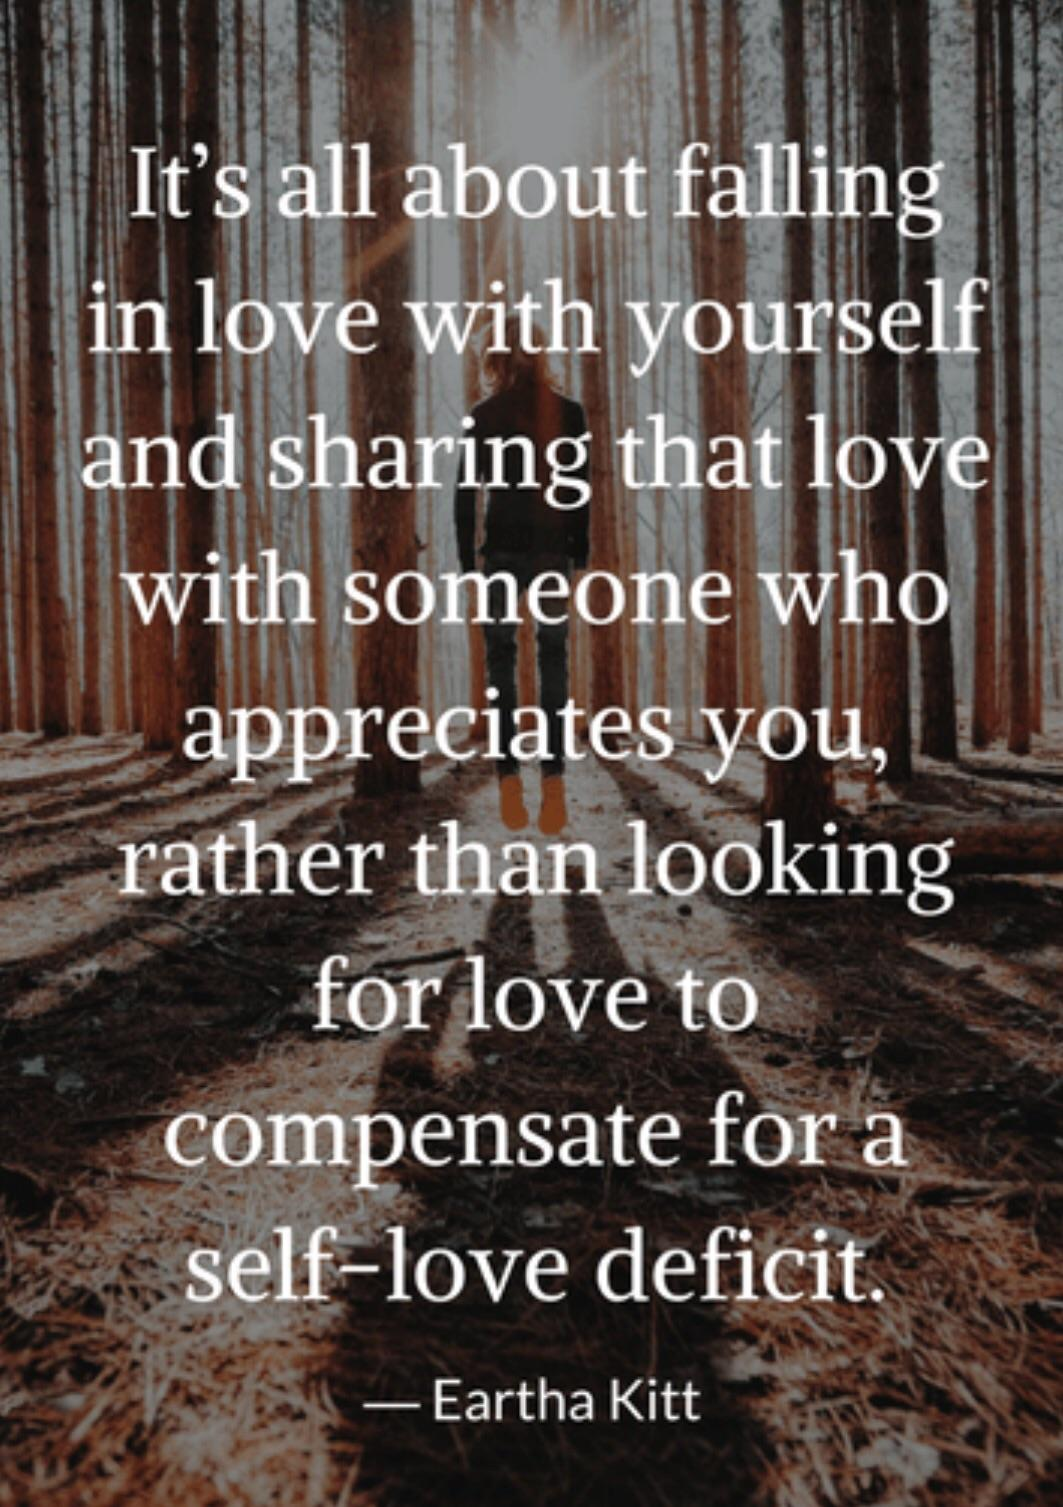 [image] Self-Love